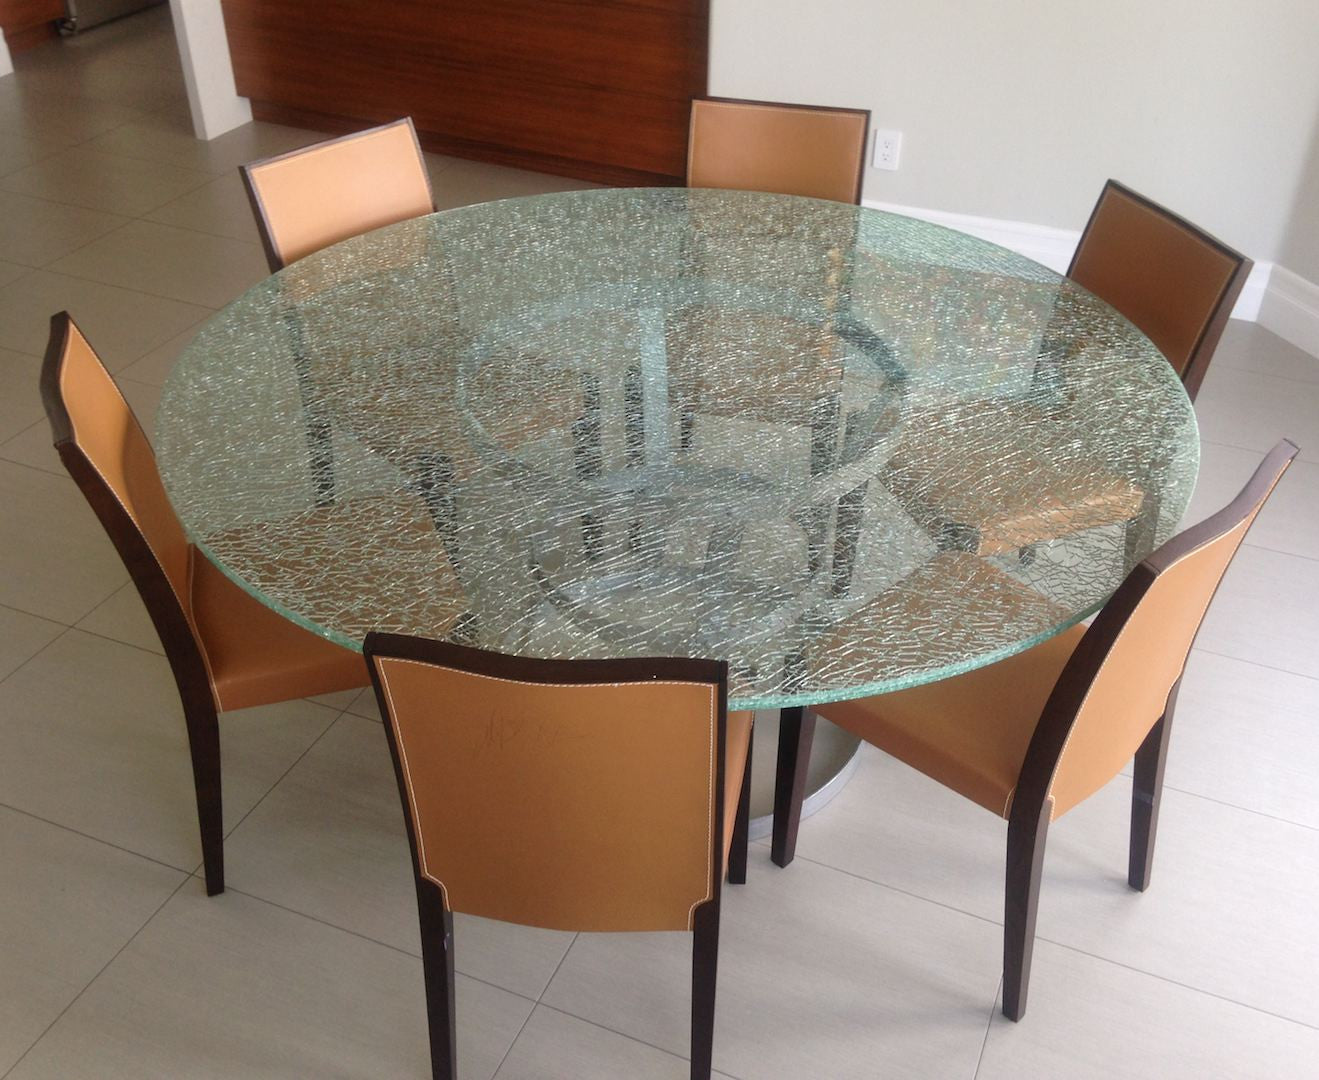 Wood And Metal Round Dining Table Part - 37: Round Crackle Glass Dining Table With Tripod Metal Base